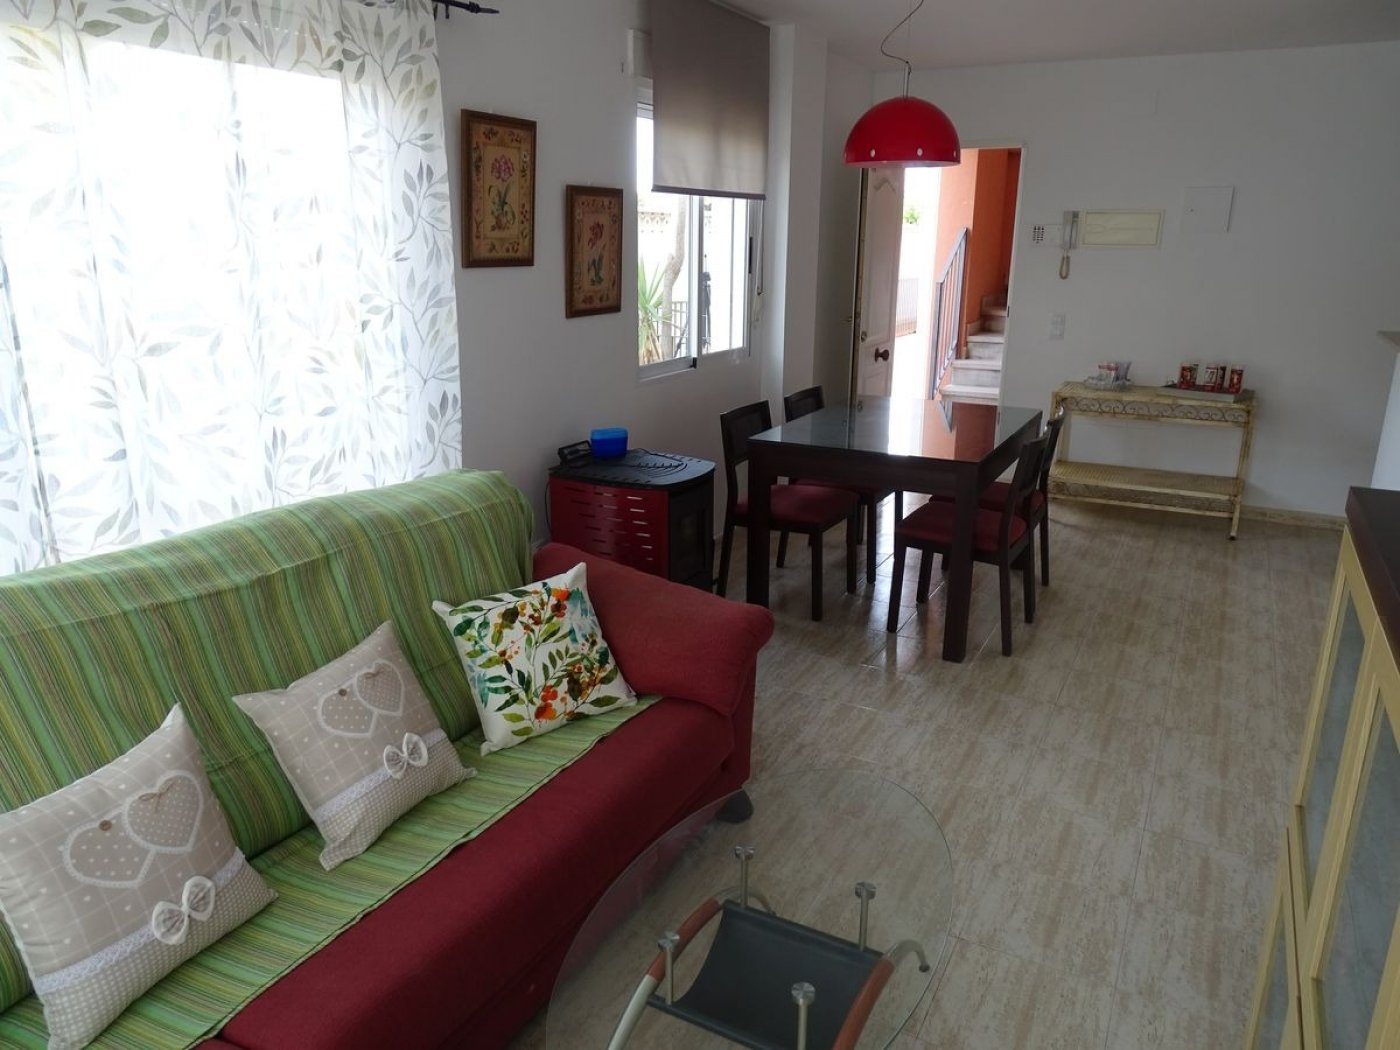 Ground Floor Apartment for rent in MONTSIA MAR, Alcanar